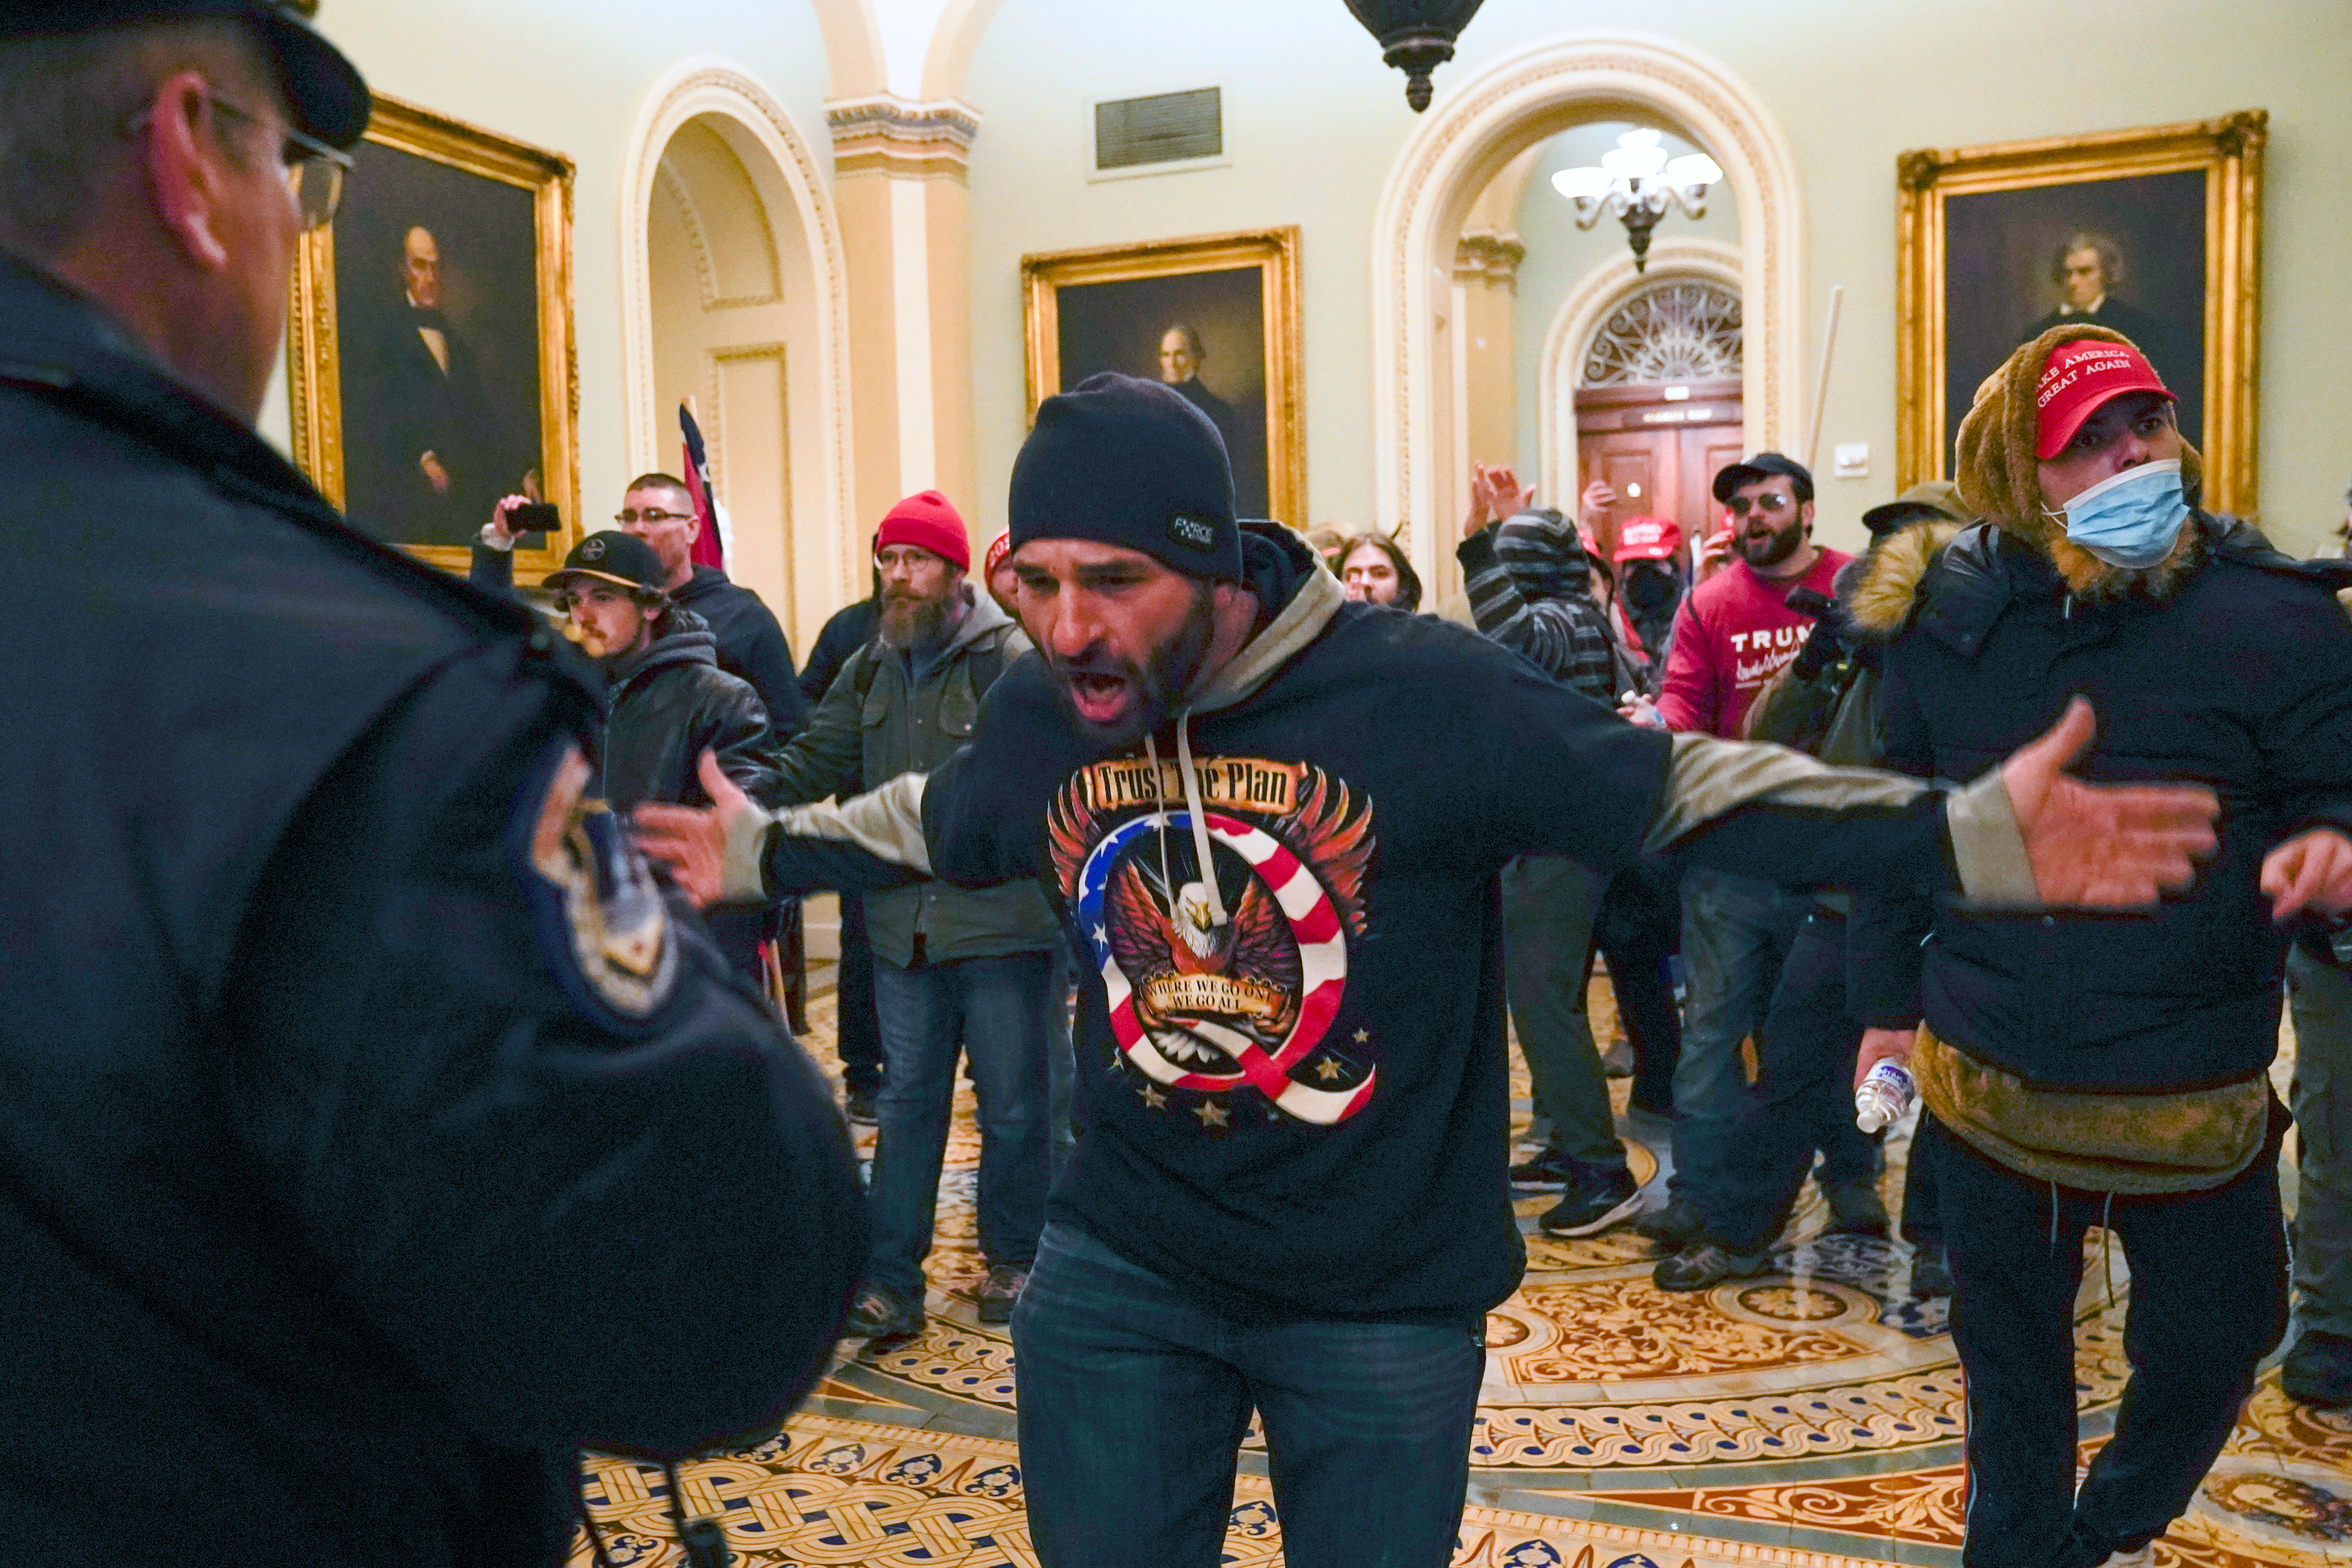 A supporter of President Donald Trump gestures to Capitol Police in the hallway outside of the Senate Chamber on January 6.